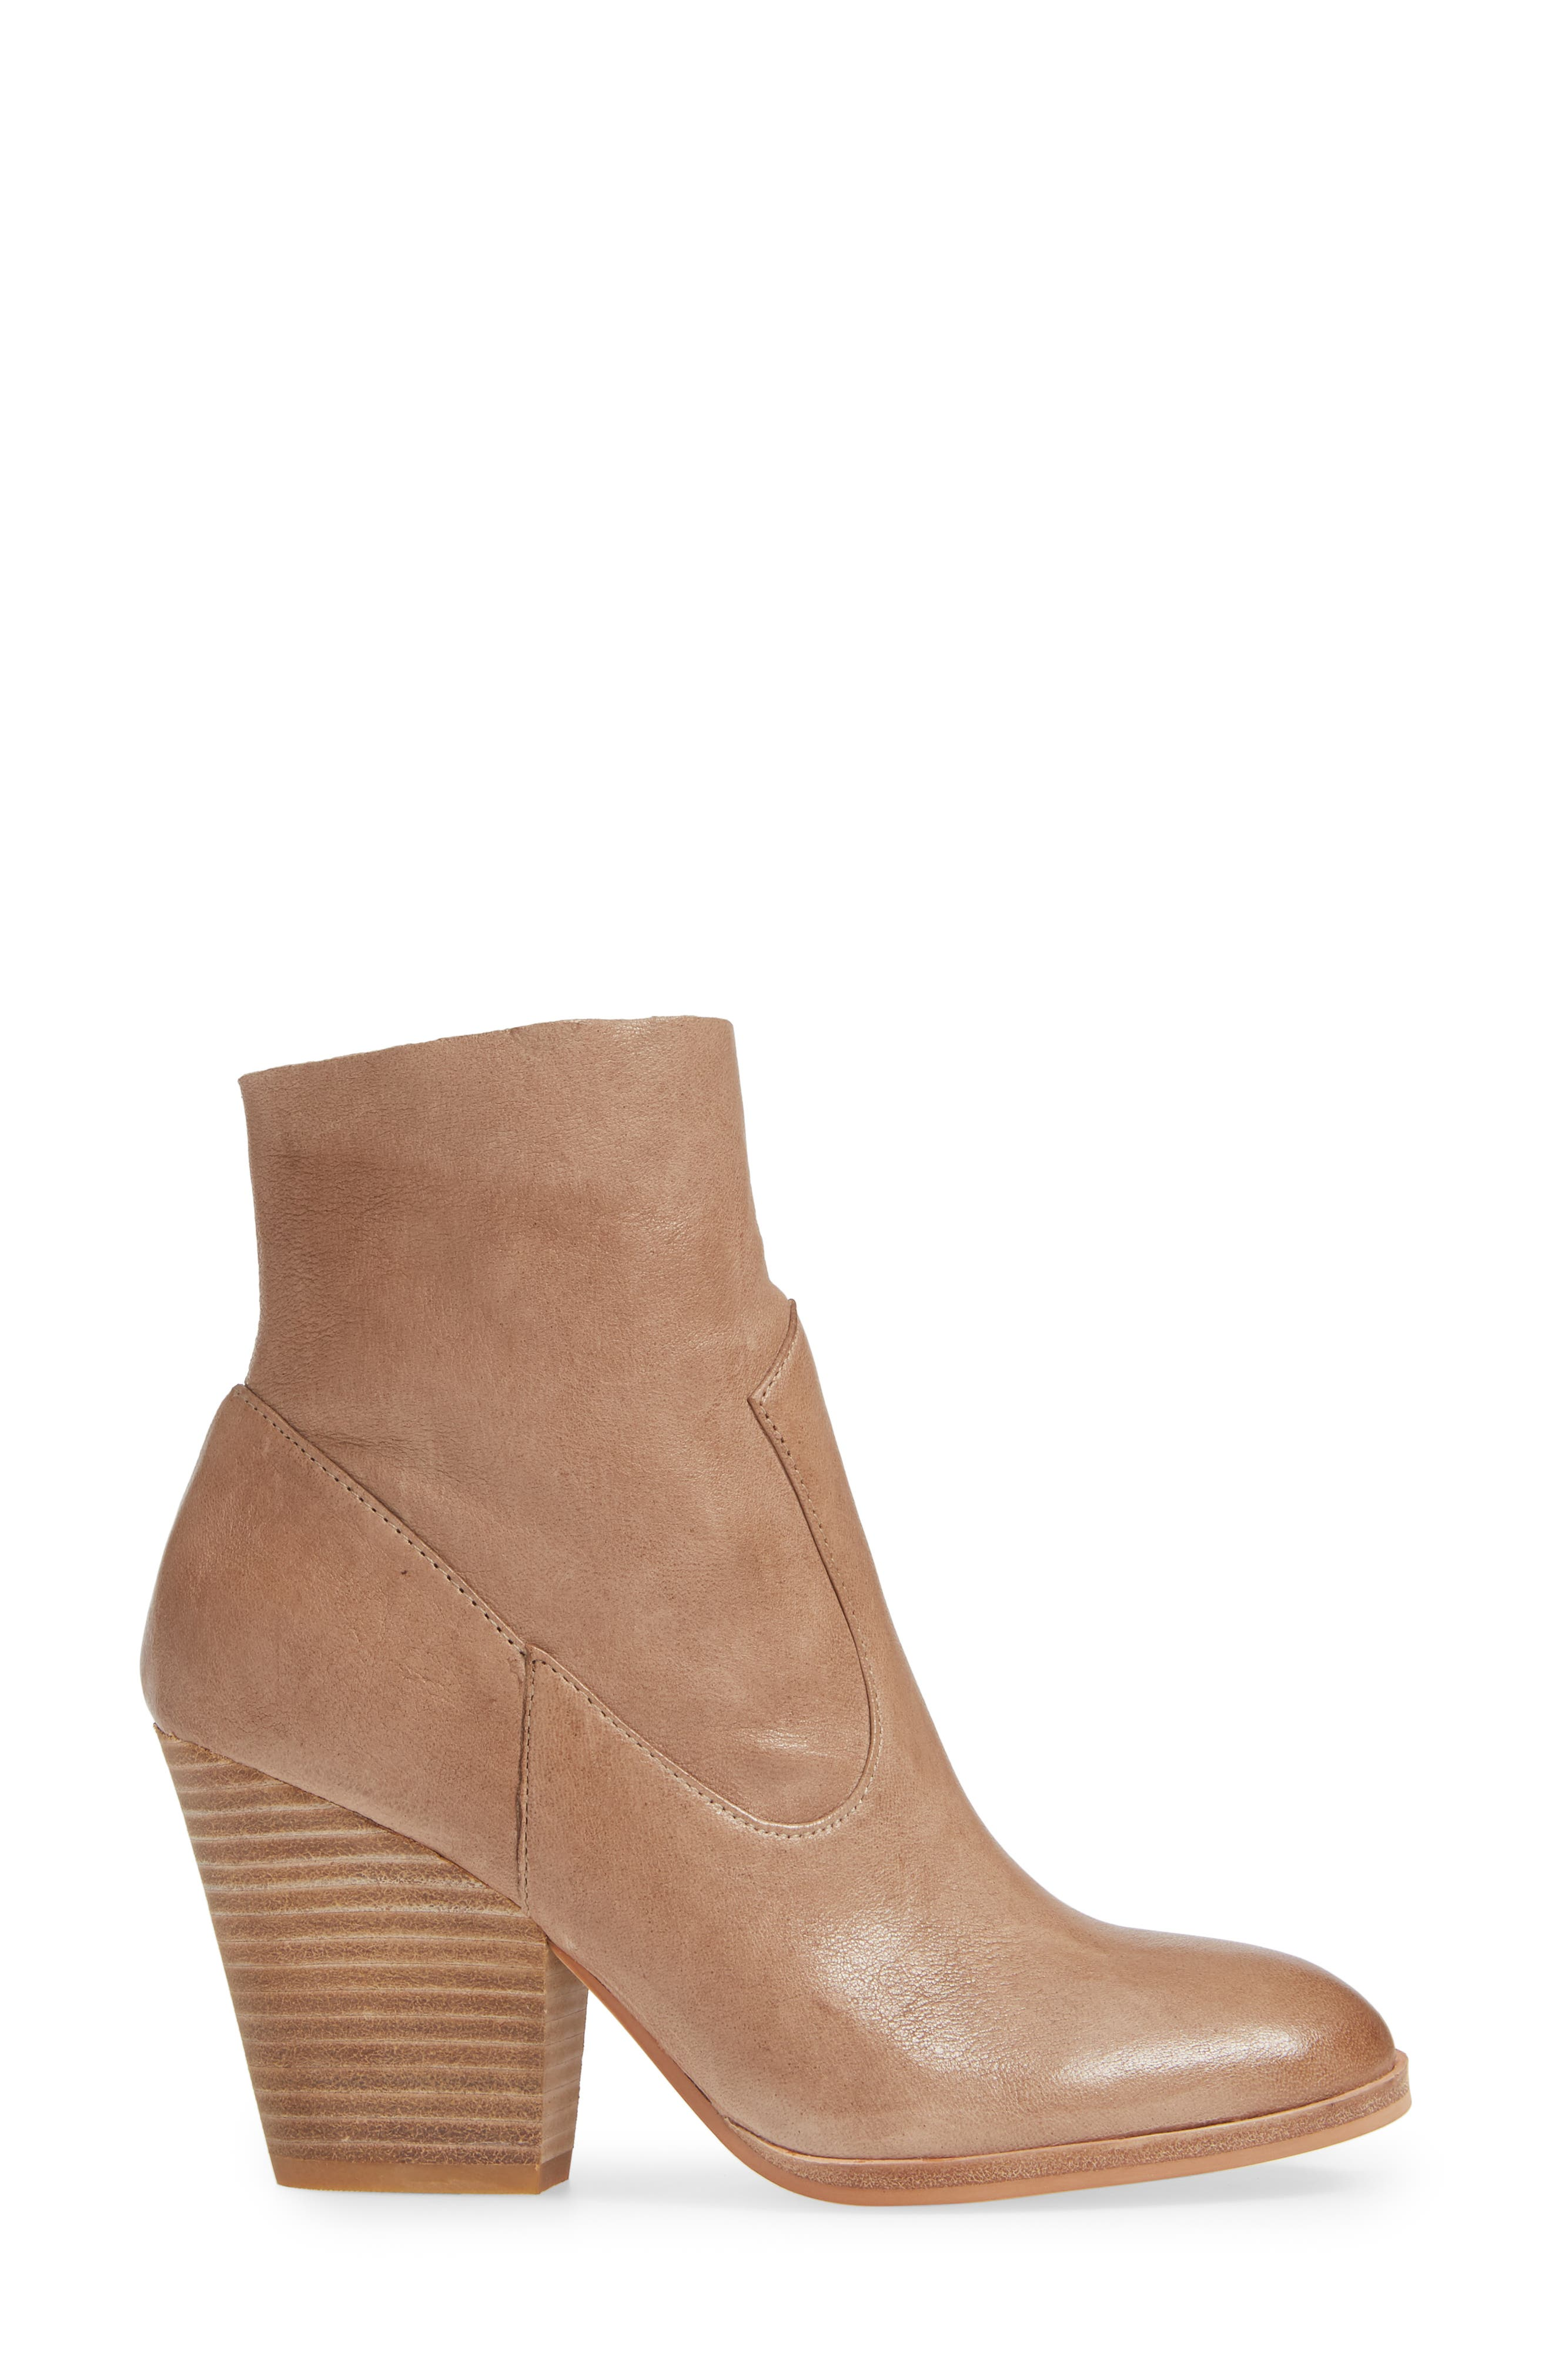 Isola Lani Block Heel Bootie,                             Alternate thumbnail 3, color,                             LIGHT TAUPE LEATHER